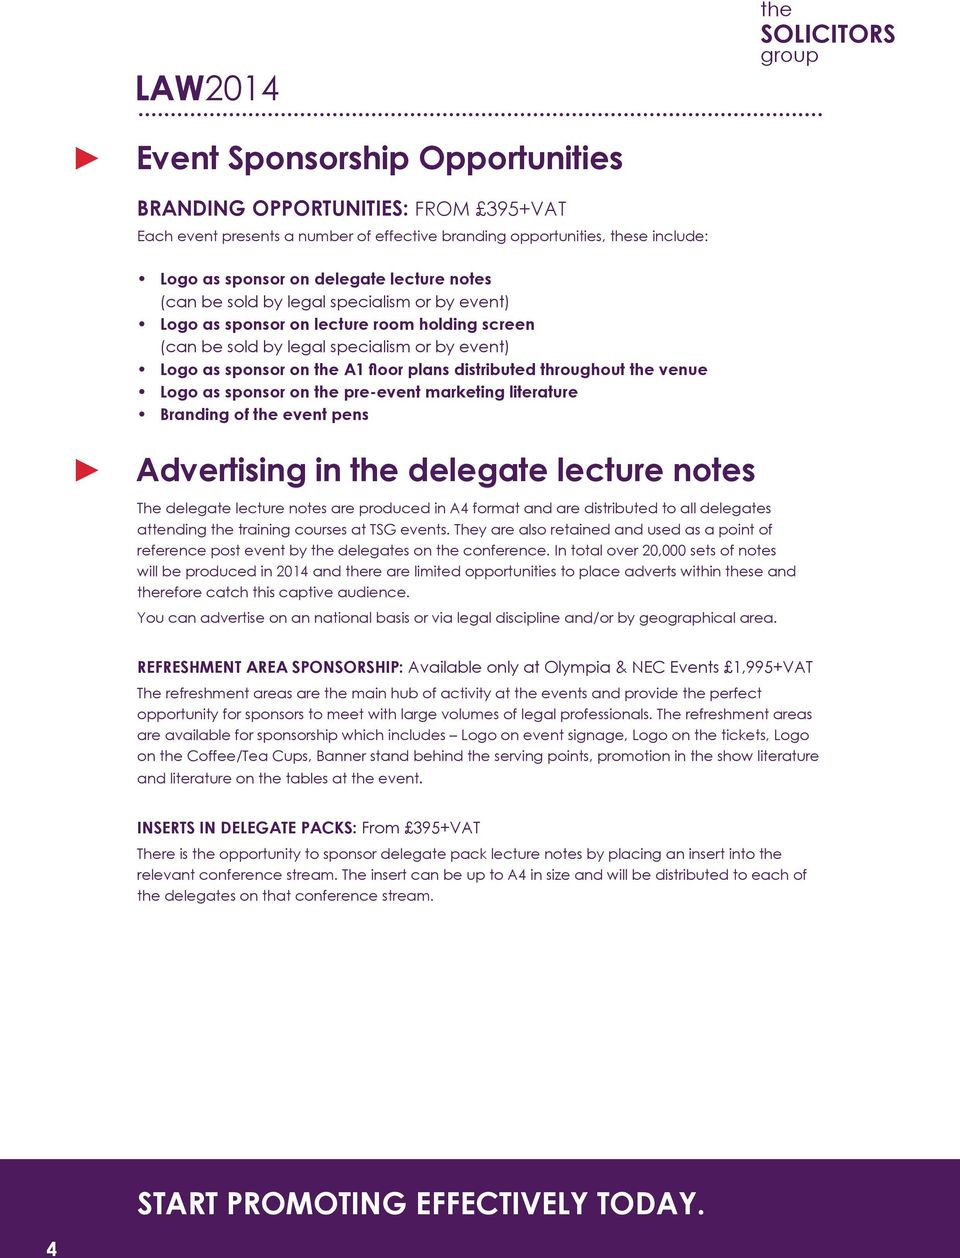 as sponsor on pre-event marketing literature Branding of event pens Advertising in delegate lecture notes The delegate lecture notes are produced in A4 format and are distributed to all delegates